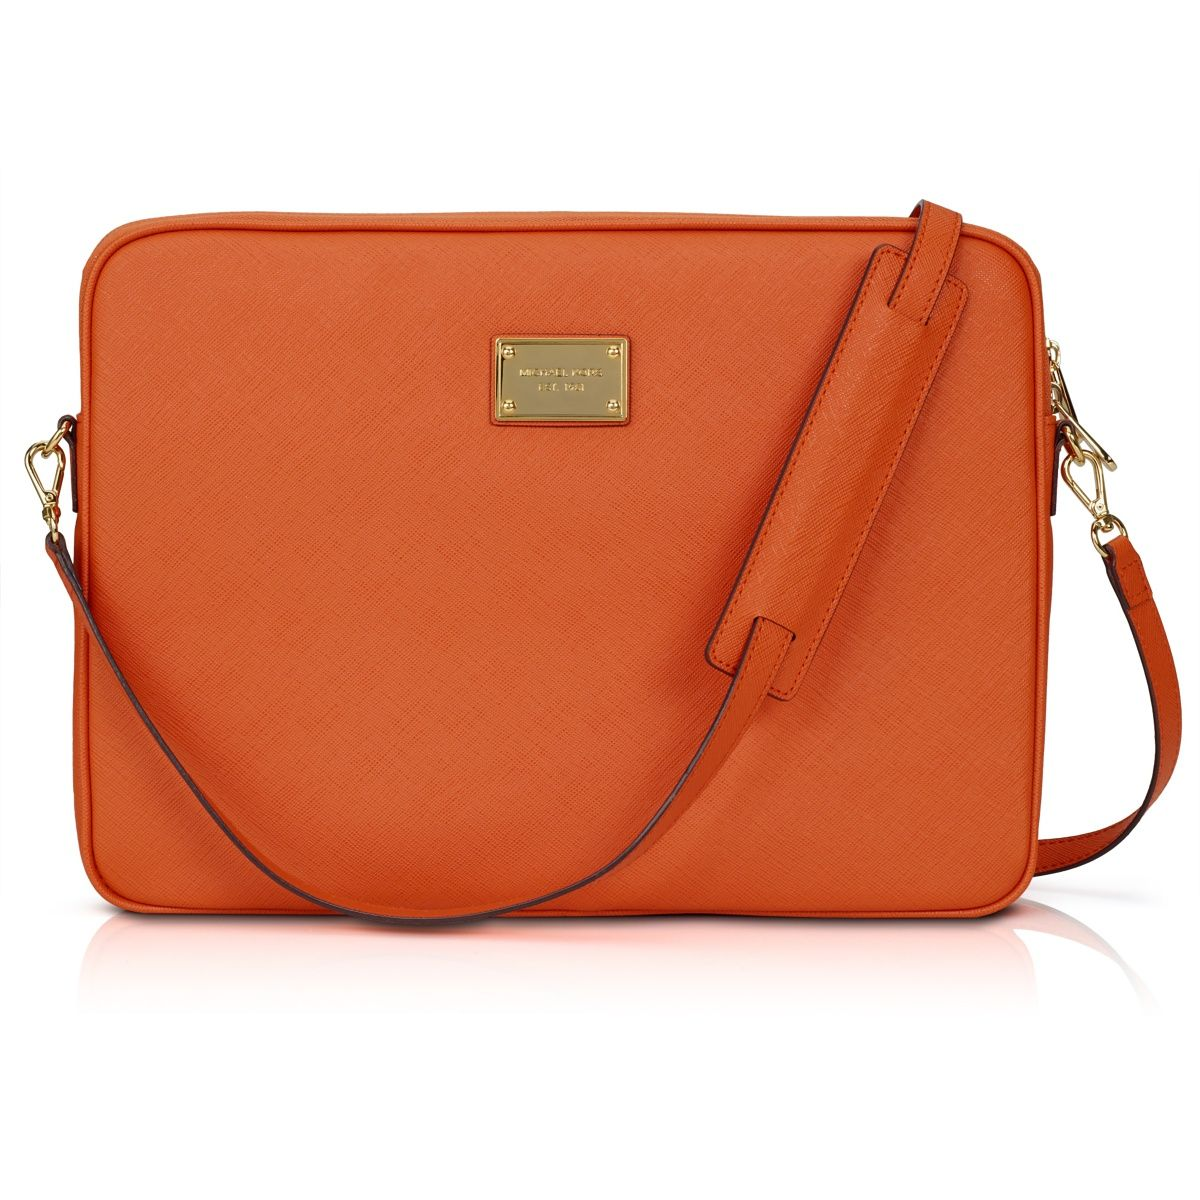 1564cc37a395 Michael Kors Saffiano tangerine Mac laptop case. Well I couldn't justify  the little Jet Set handbag, but this is clearly a practical requirement.